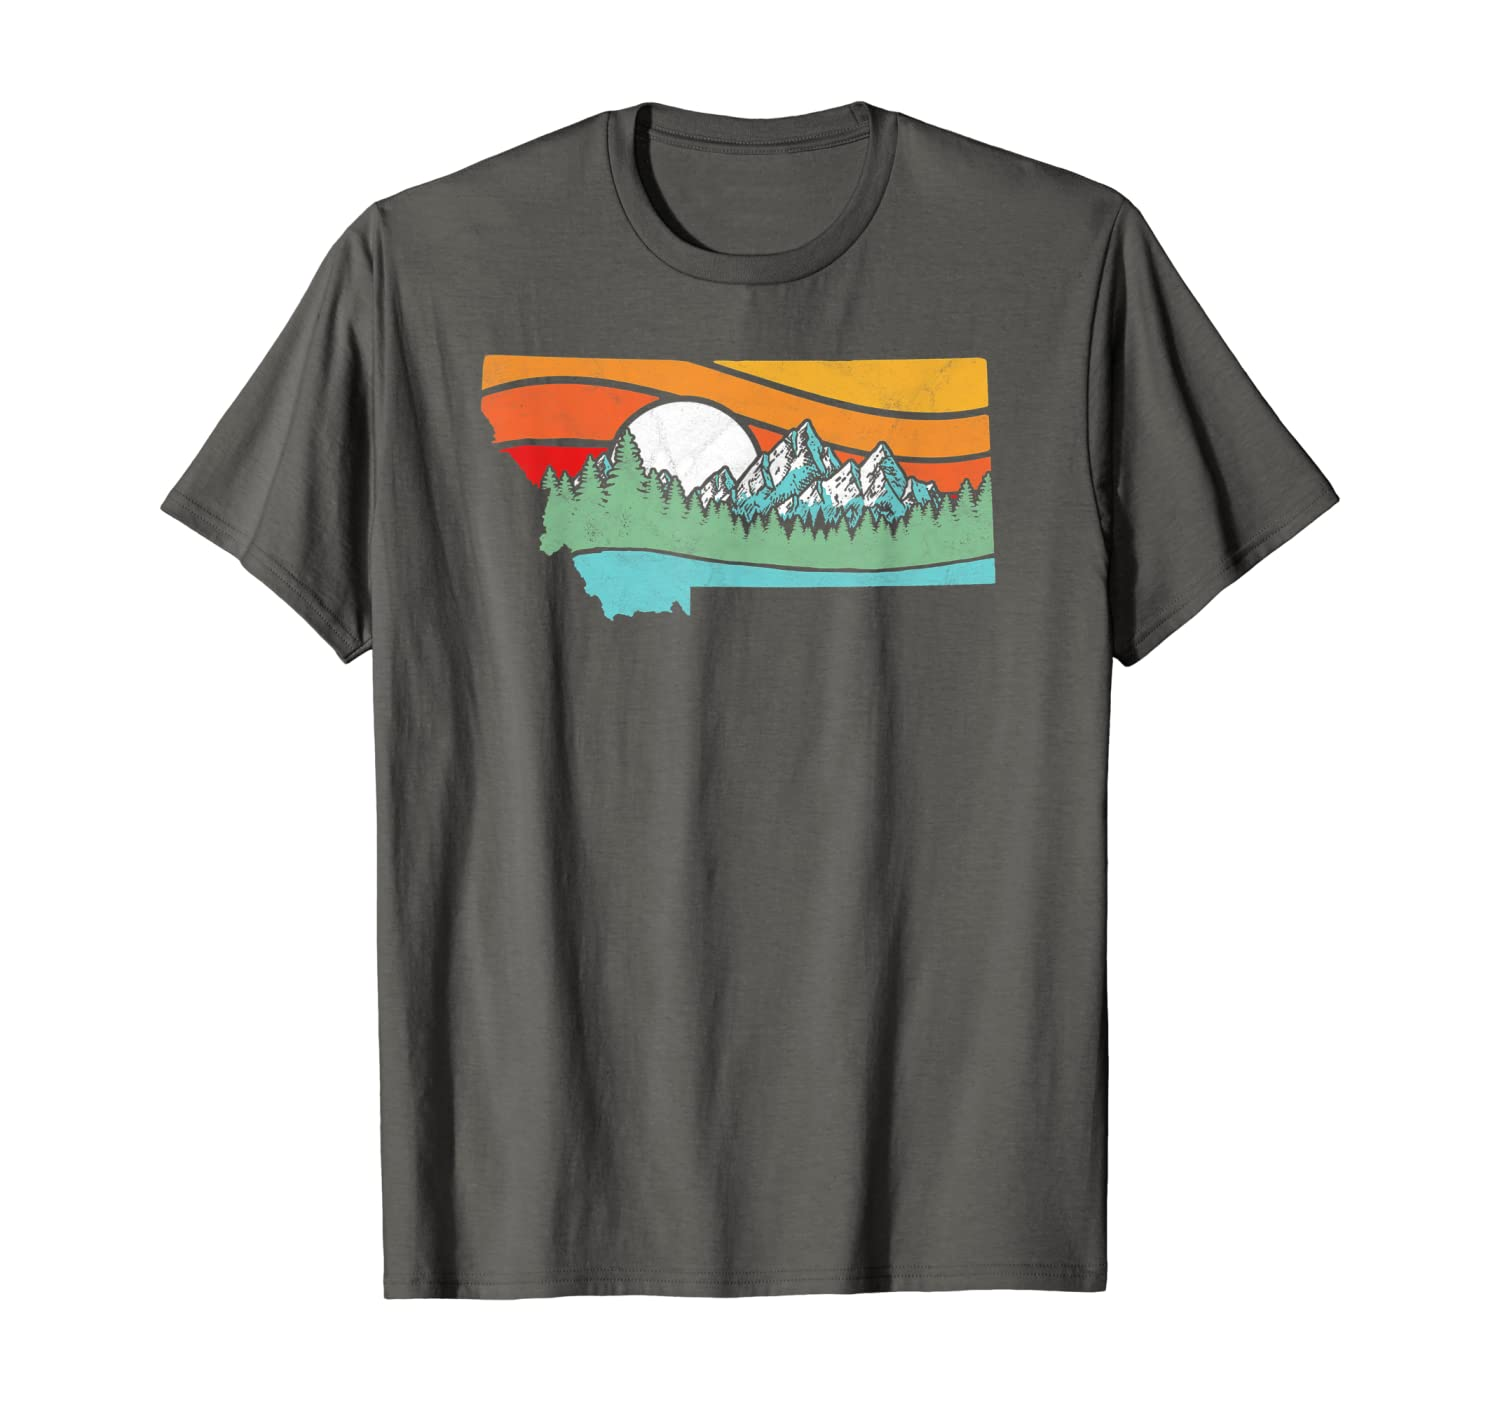 Montana Outdoors Retro Mountains & Nature Graphic T-Shirt